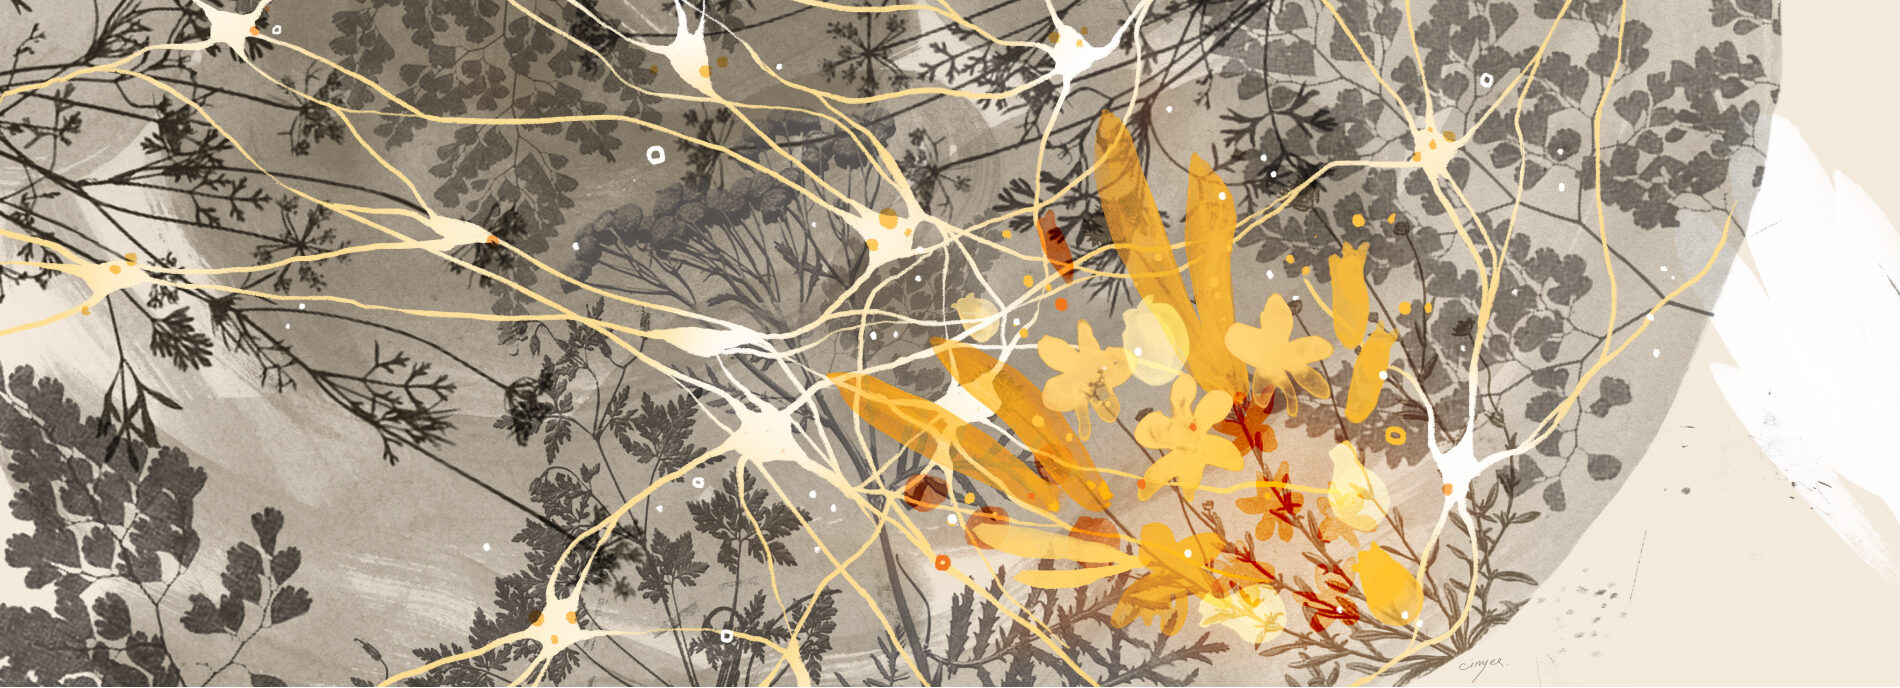 Illustration shows a closeup view of the brain with neurons and plant forms creating a semi-abstract landscape Illustration shows a closeup view of the brain with neurons and plant forms creating a semi-abstract landscape of the brain..